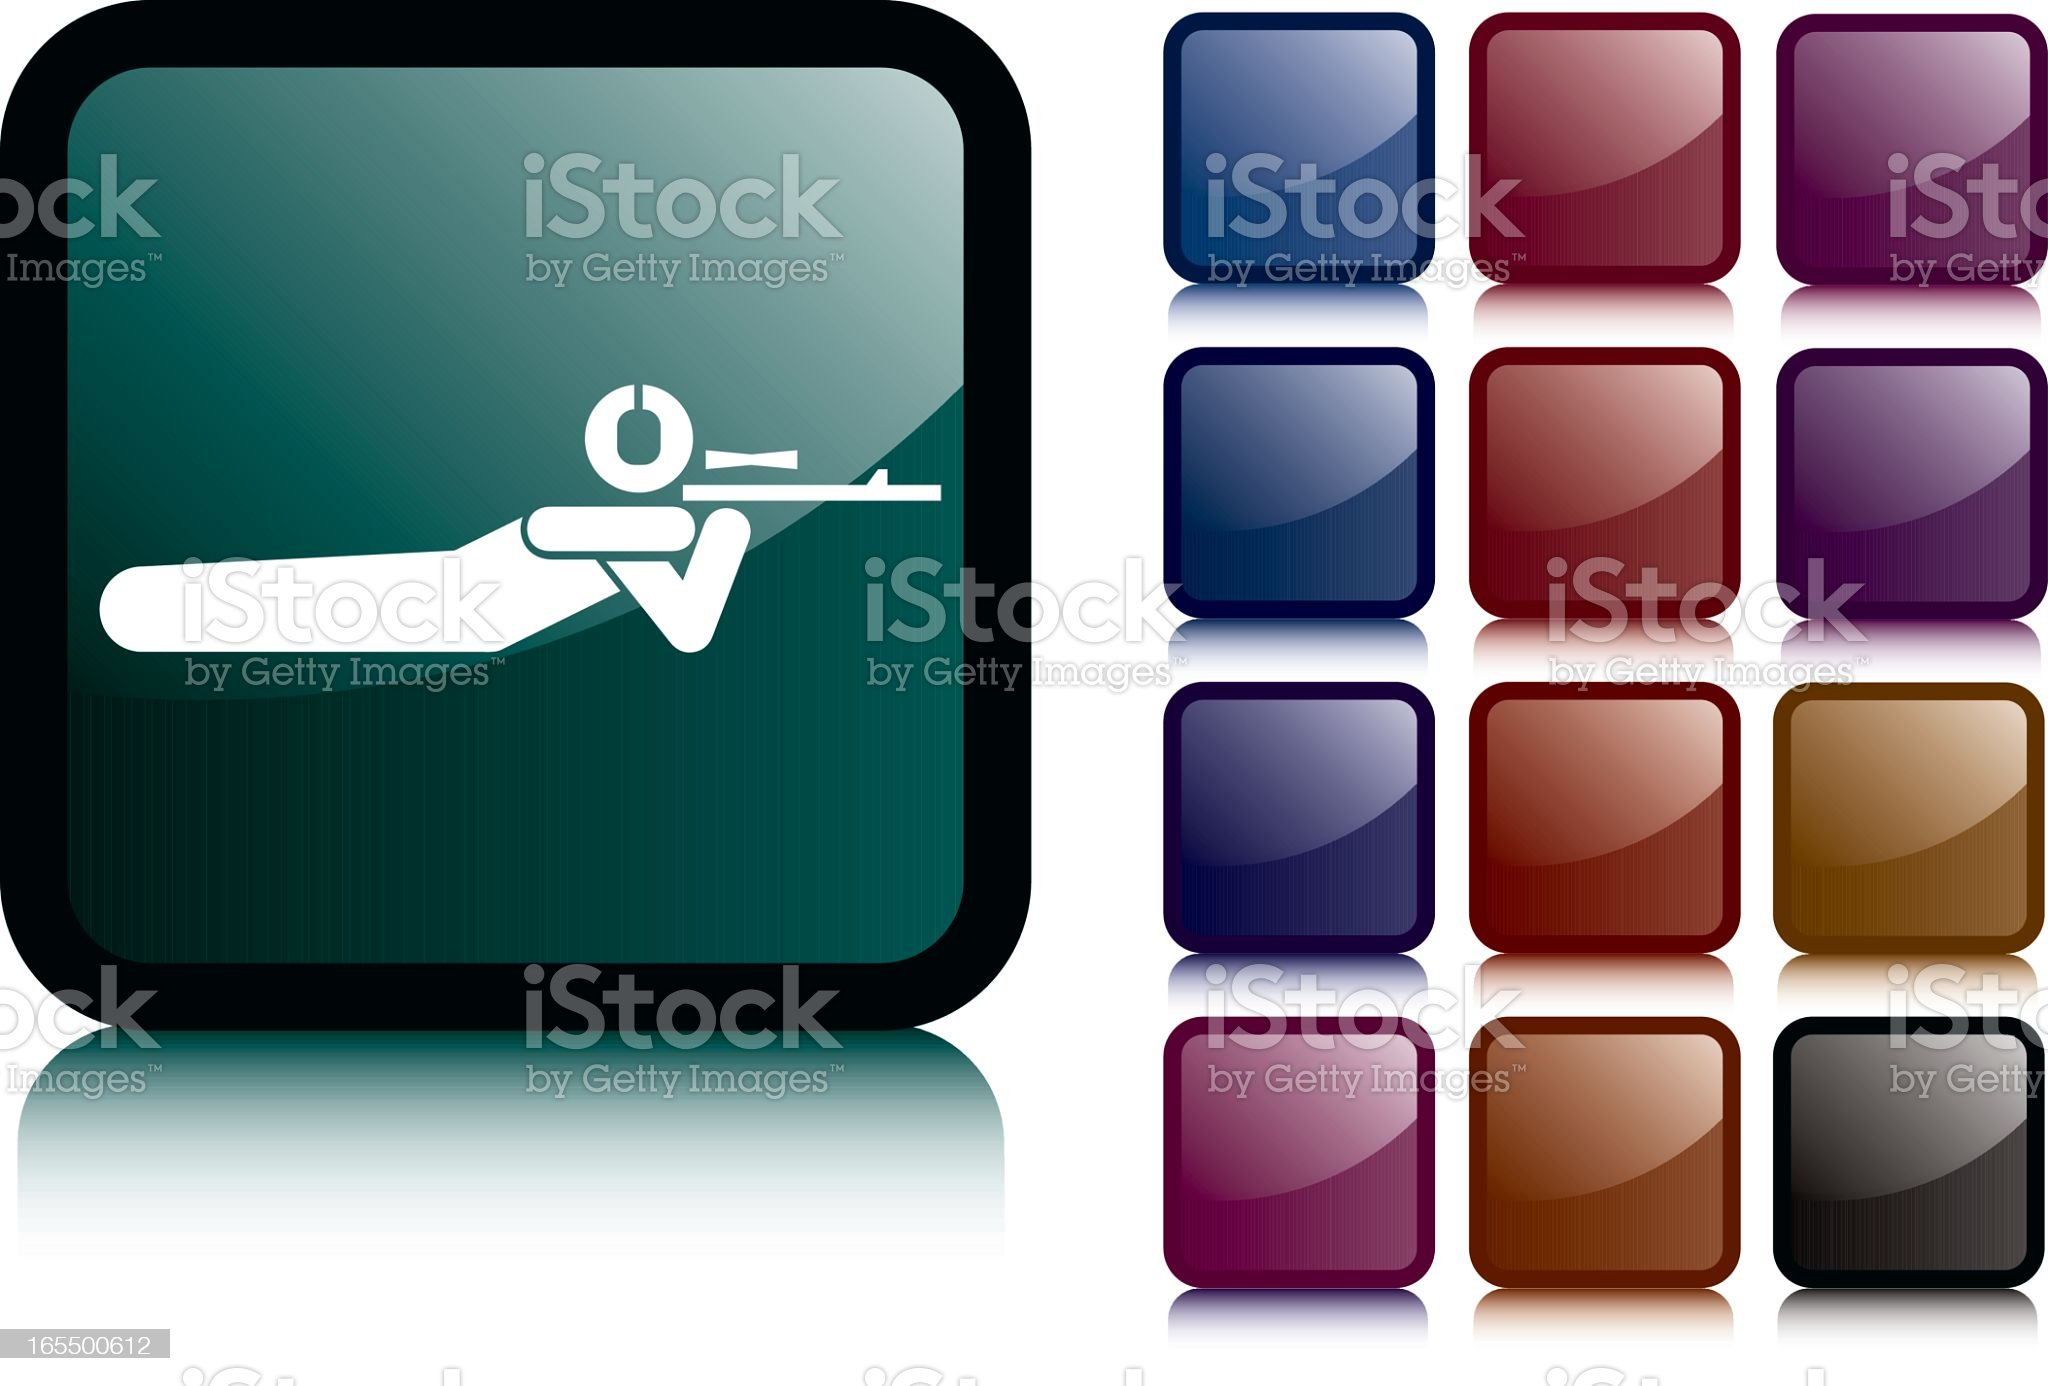 Shooting royalty-free stock vector art